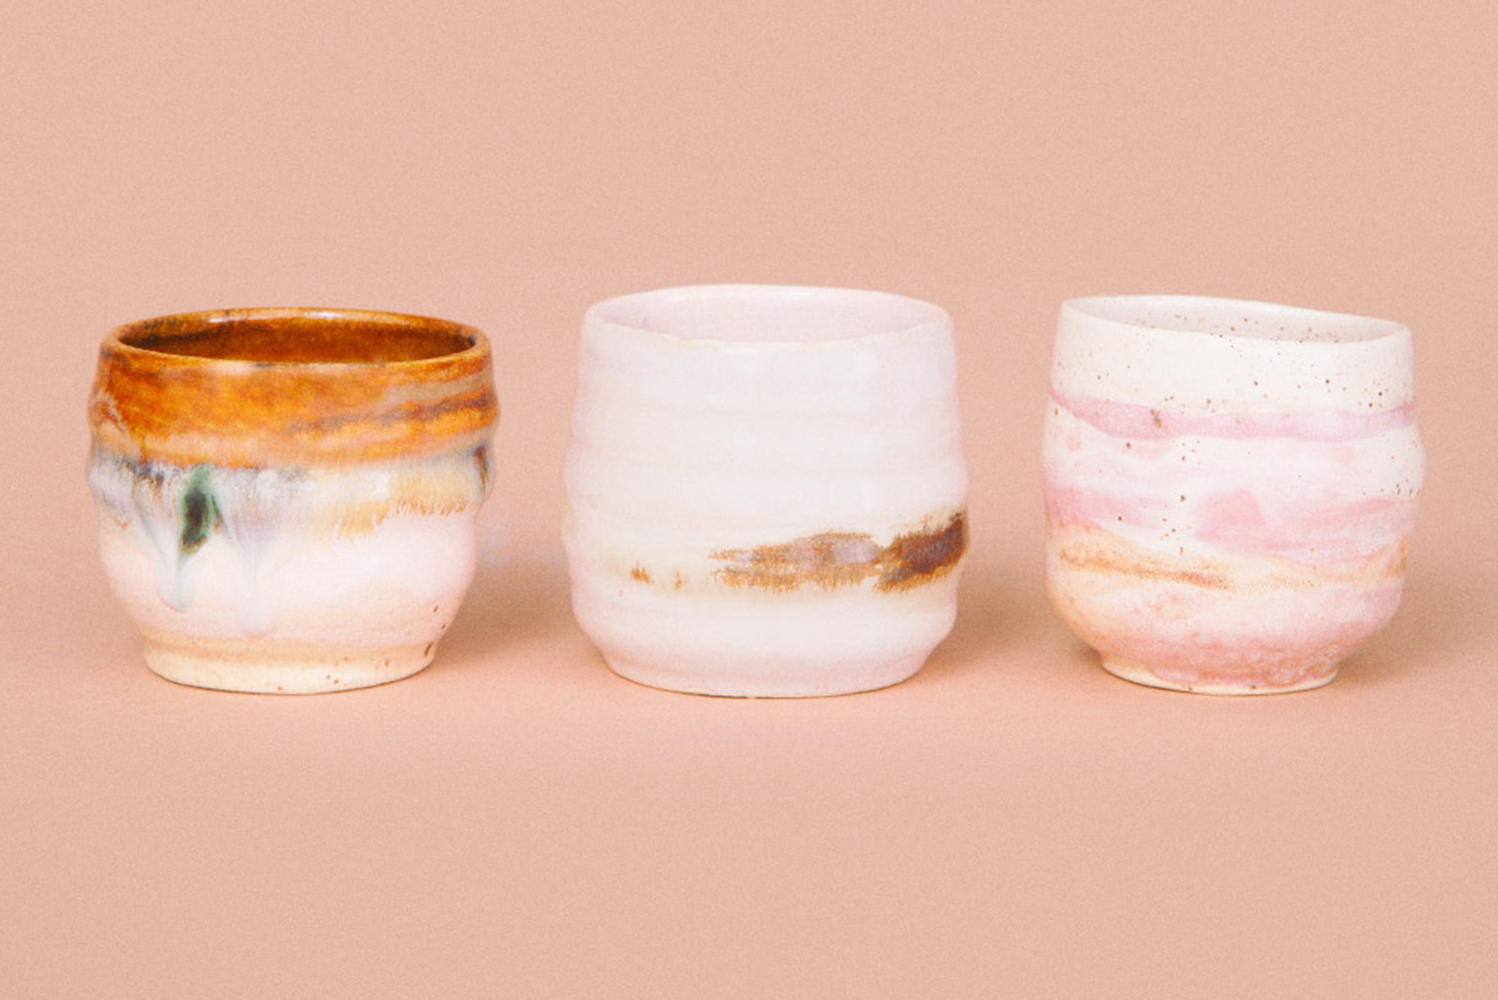 Among the offerings are ceramics in earthy brown tones woven in with pastel pinks.